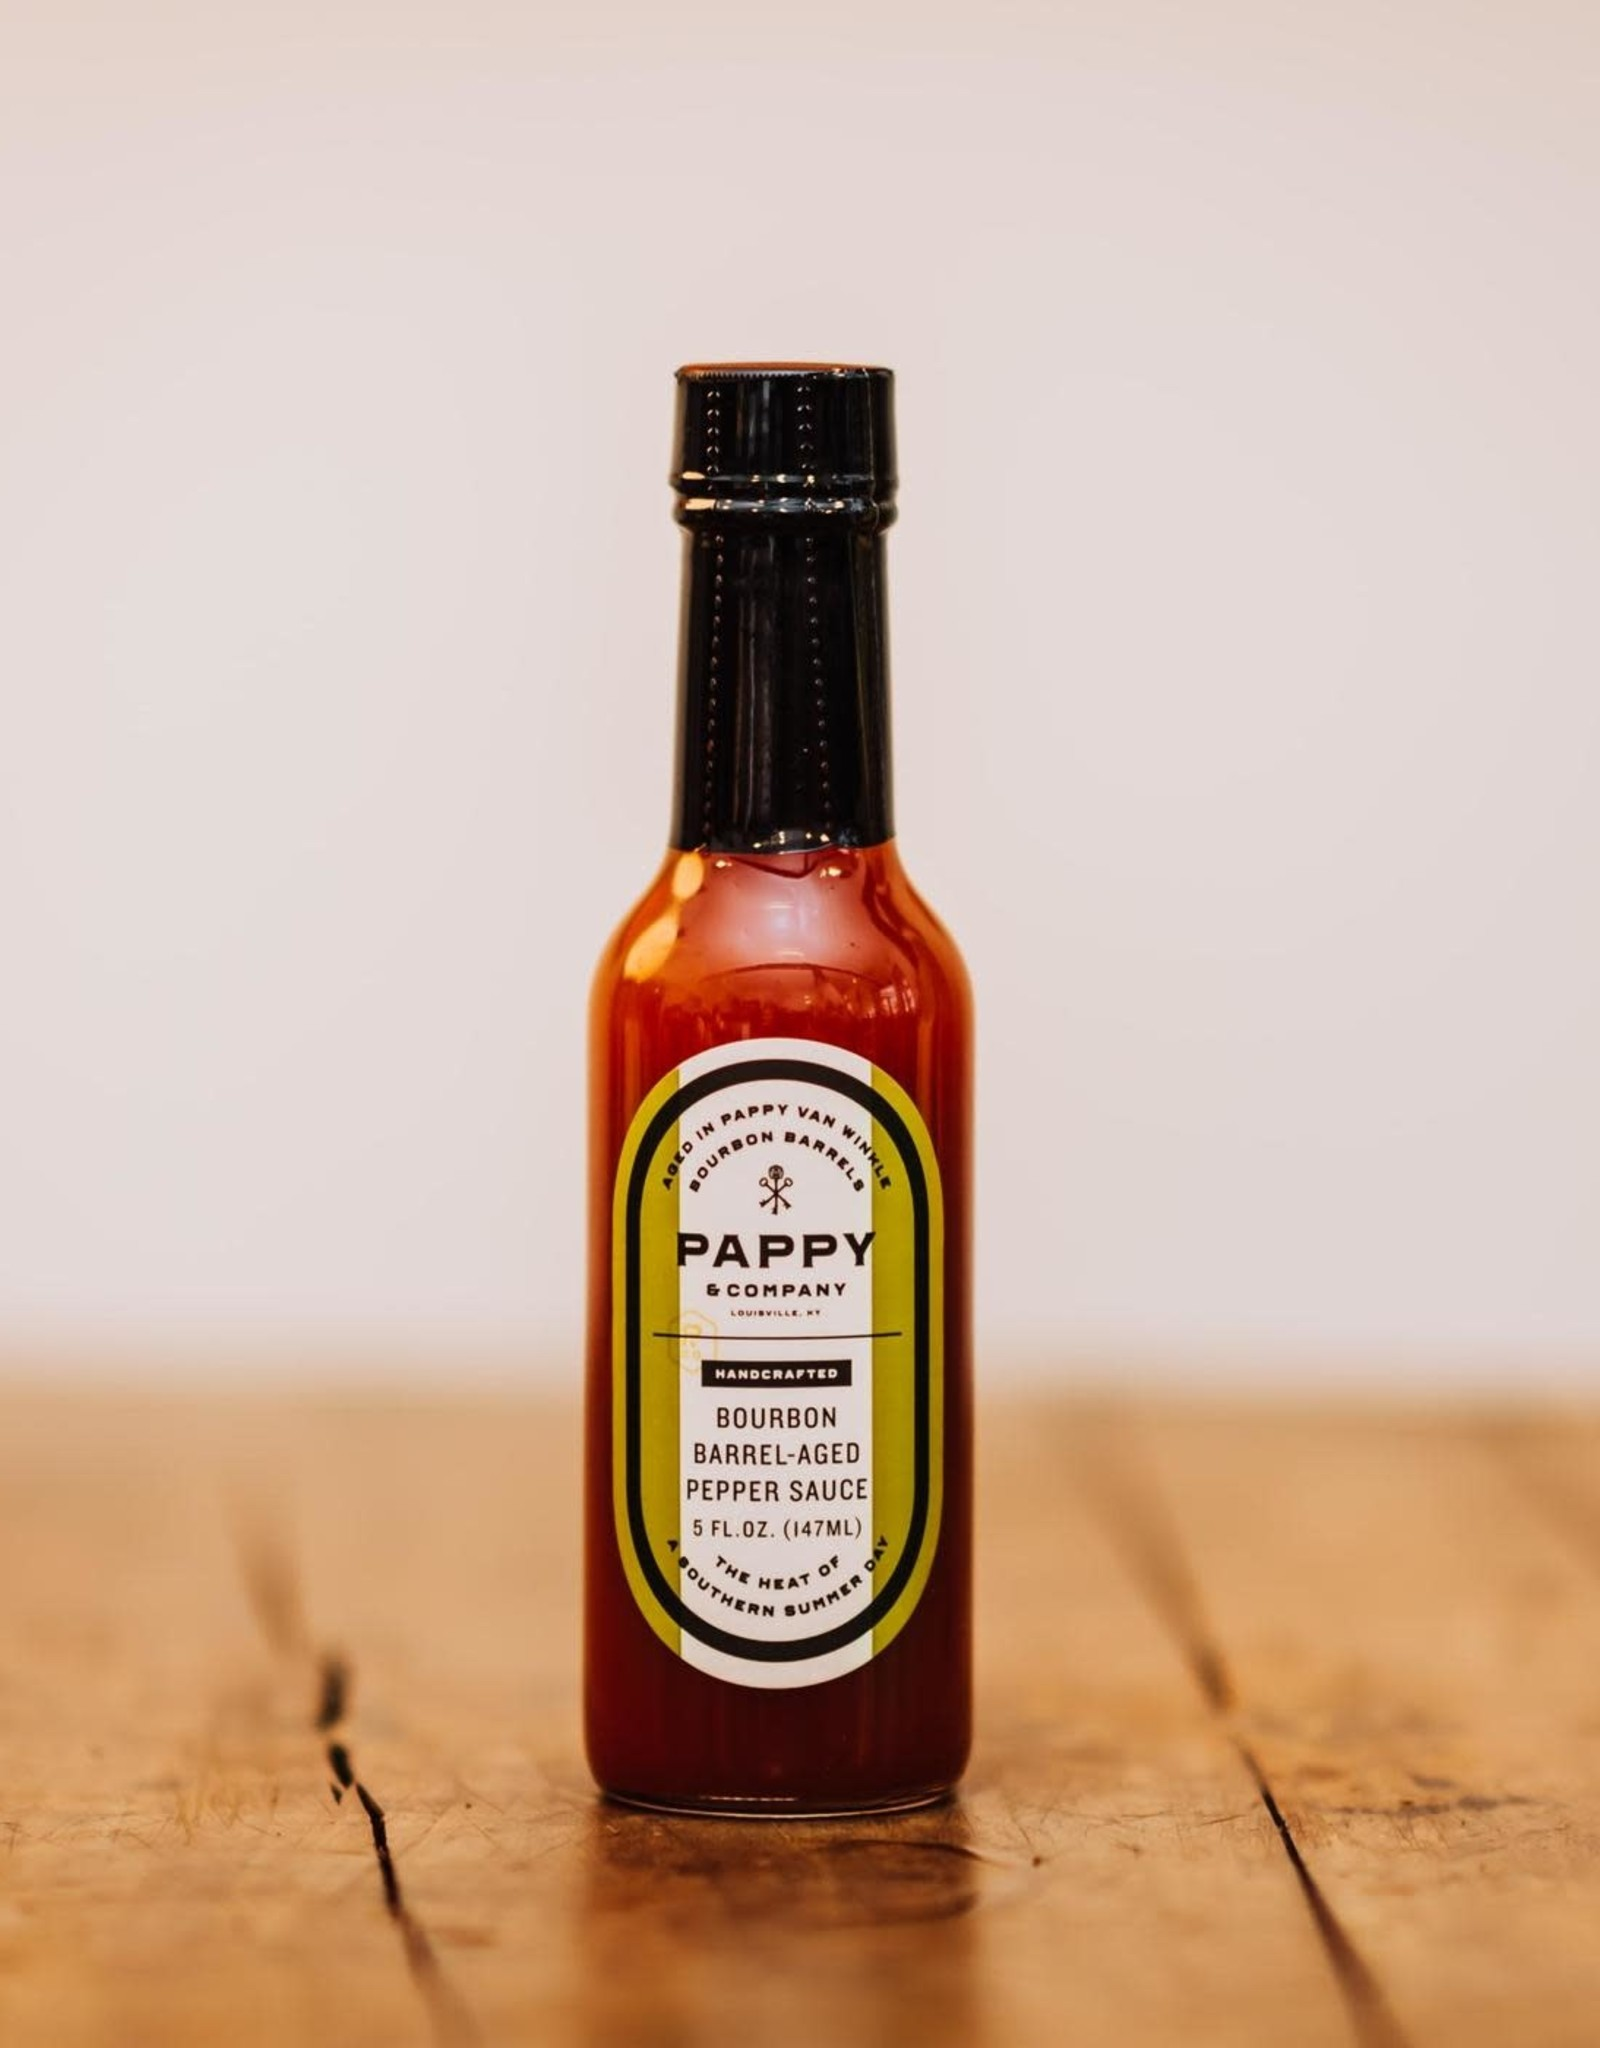 Pappy & Company Bourbon Barrel-Aged Pepper Sauce